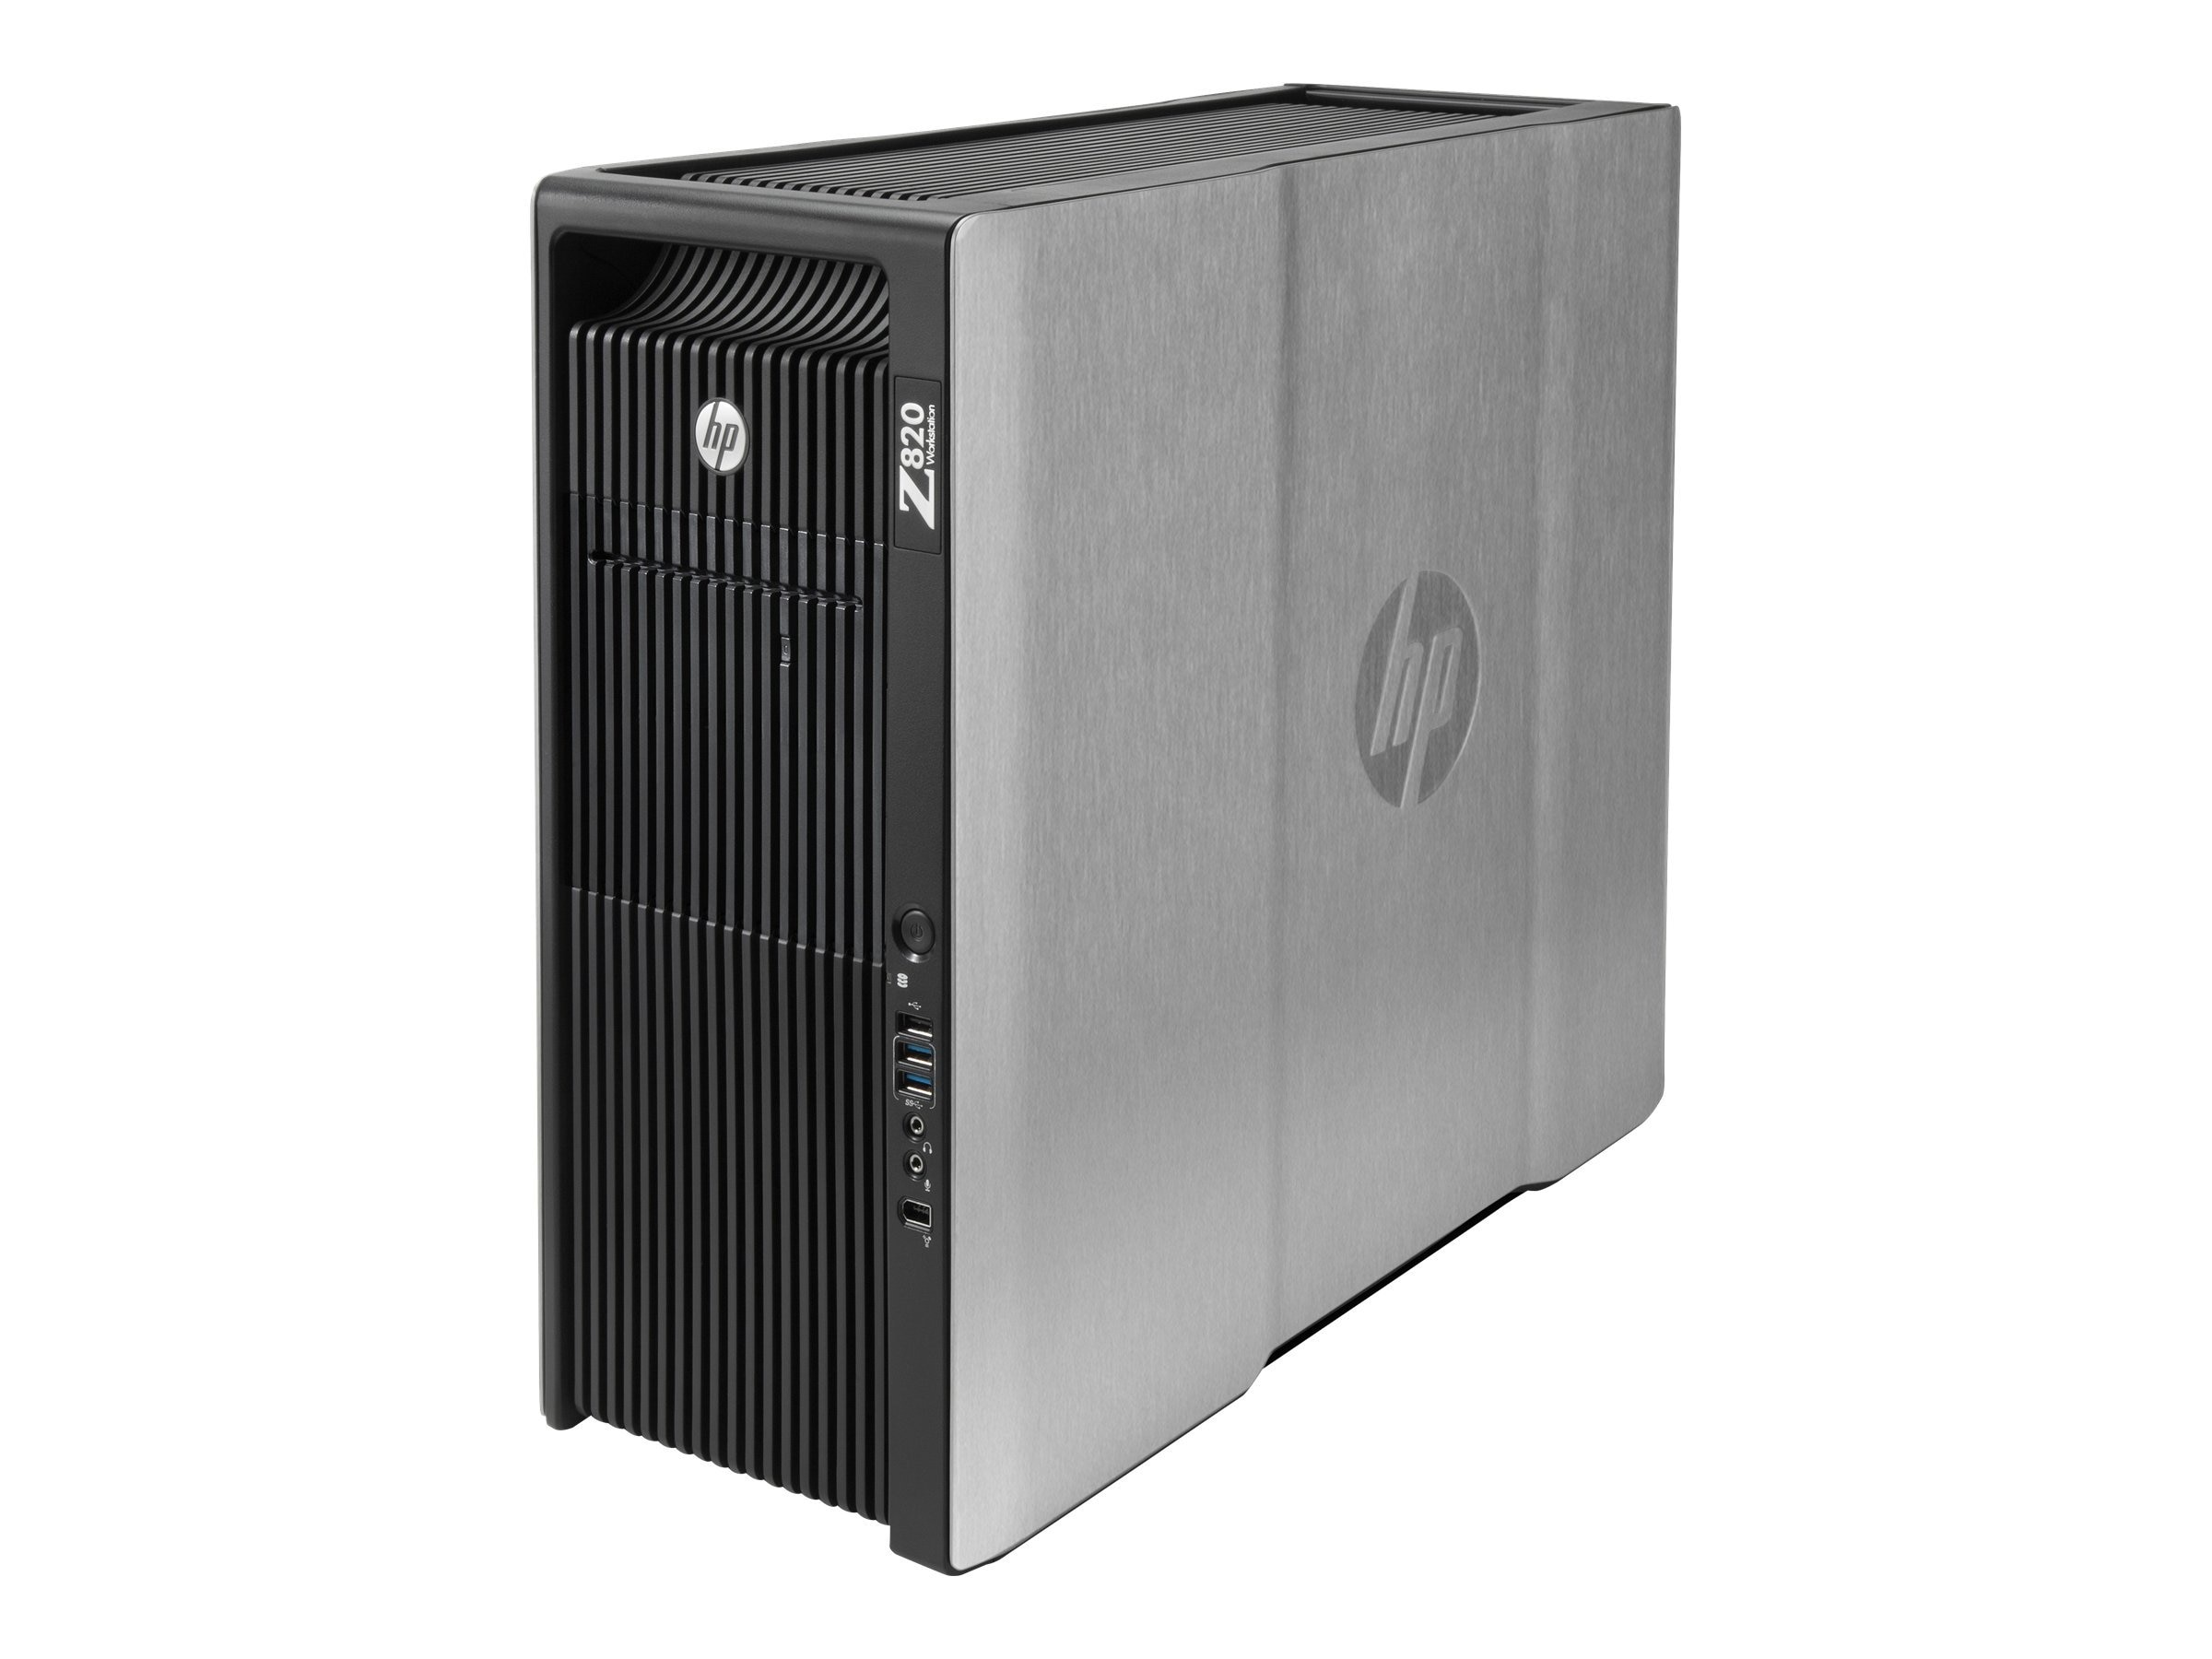 HP Z820 RMT Xeon QC E5-2643 3.3GHz 64GB 600GB SAS